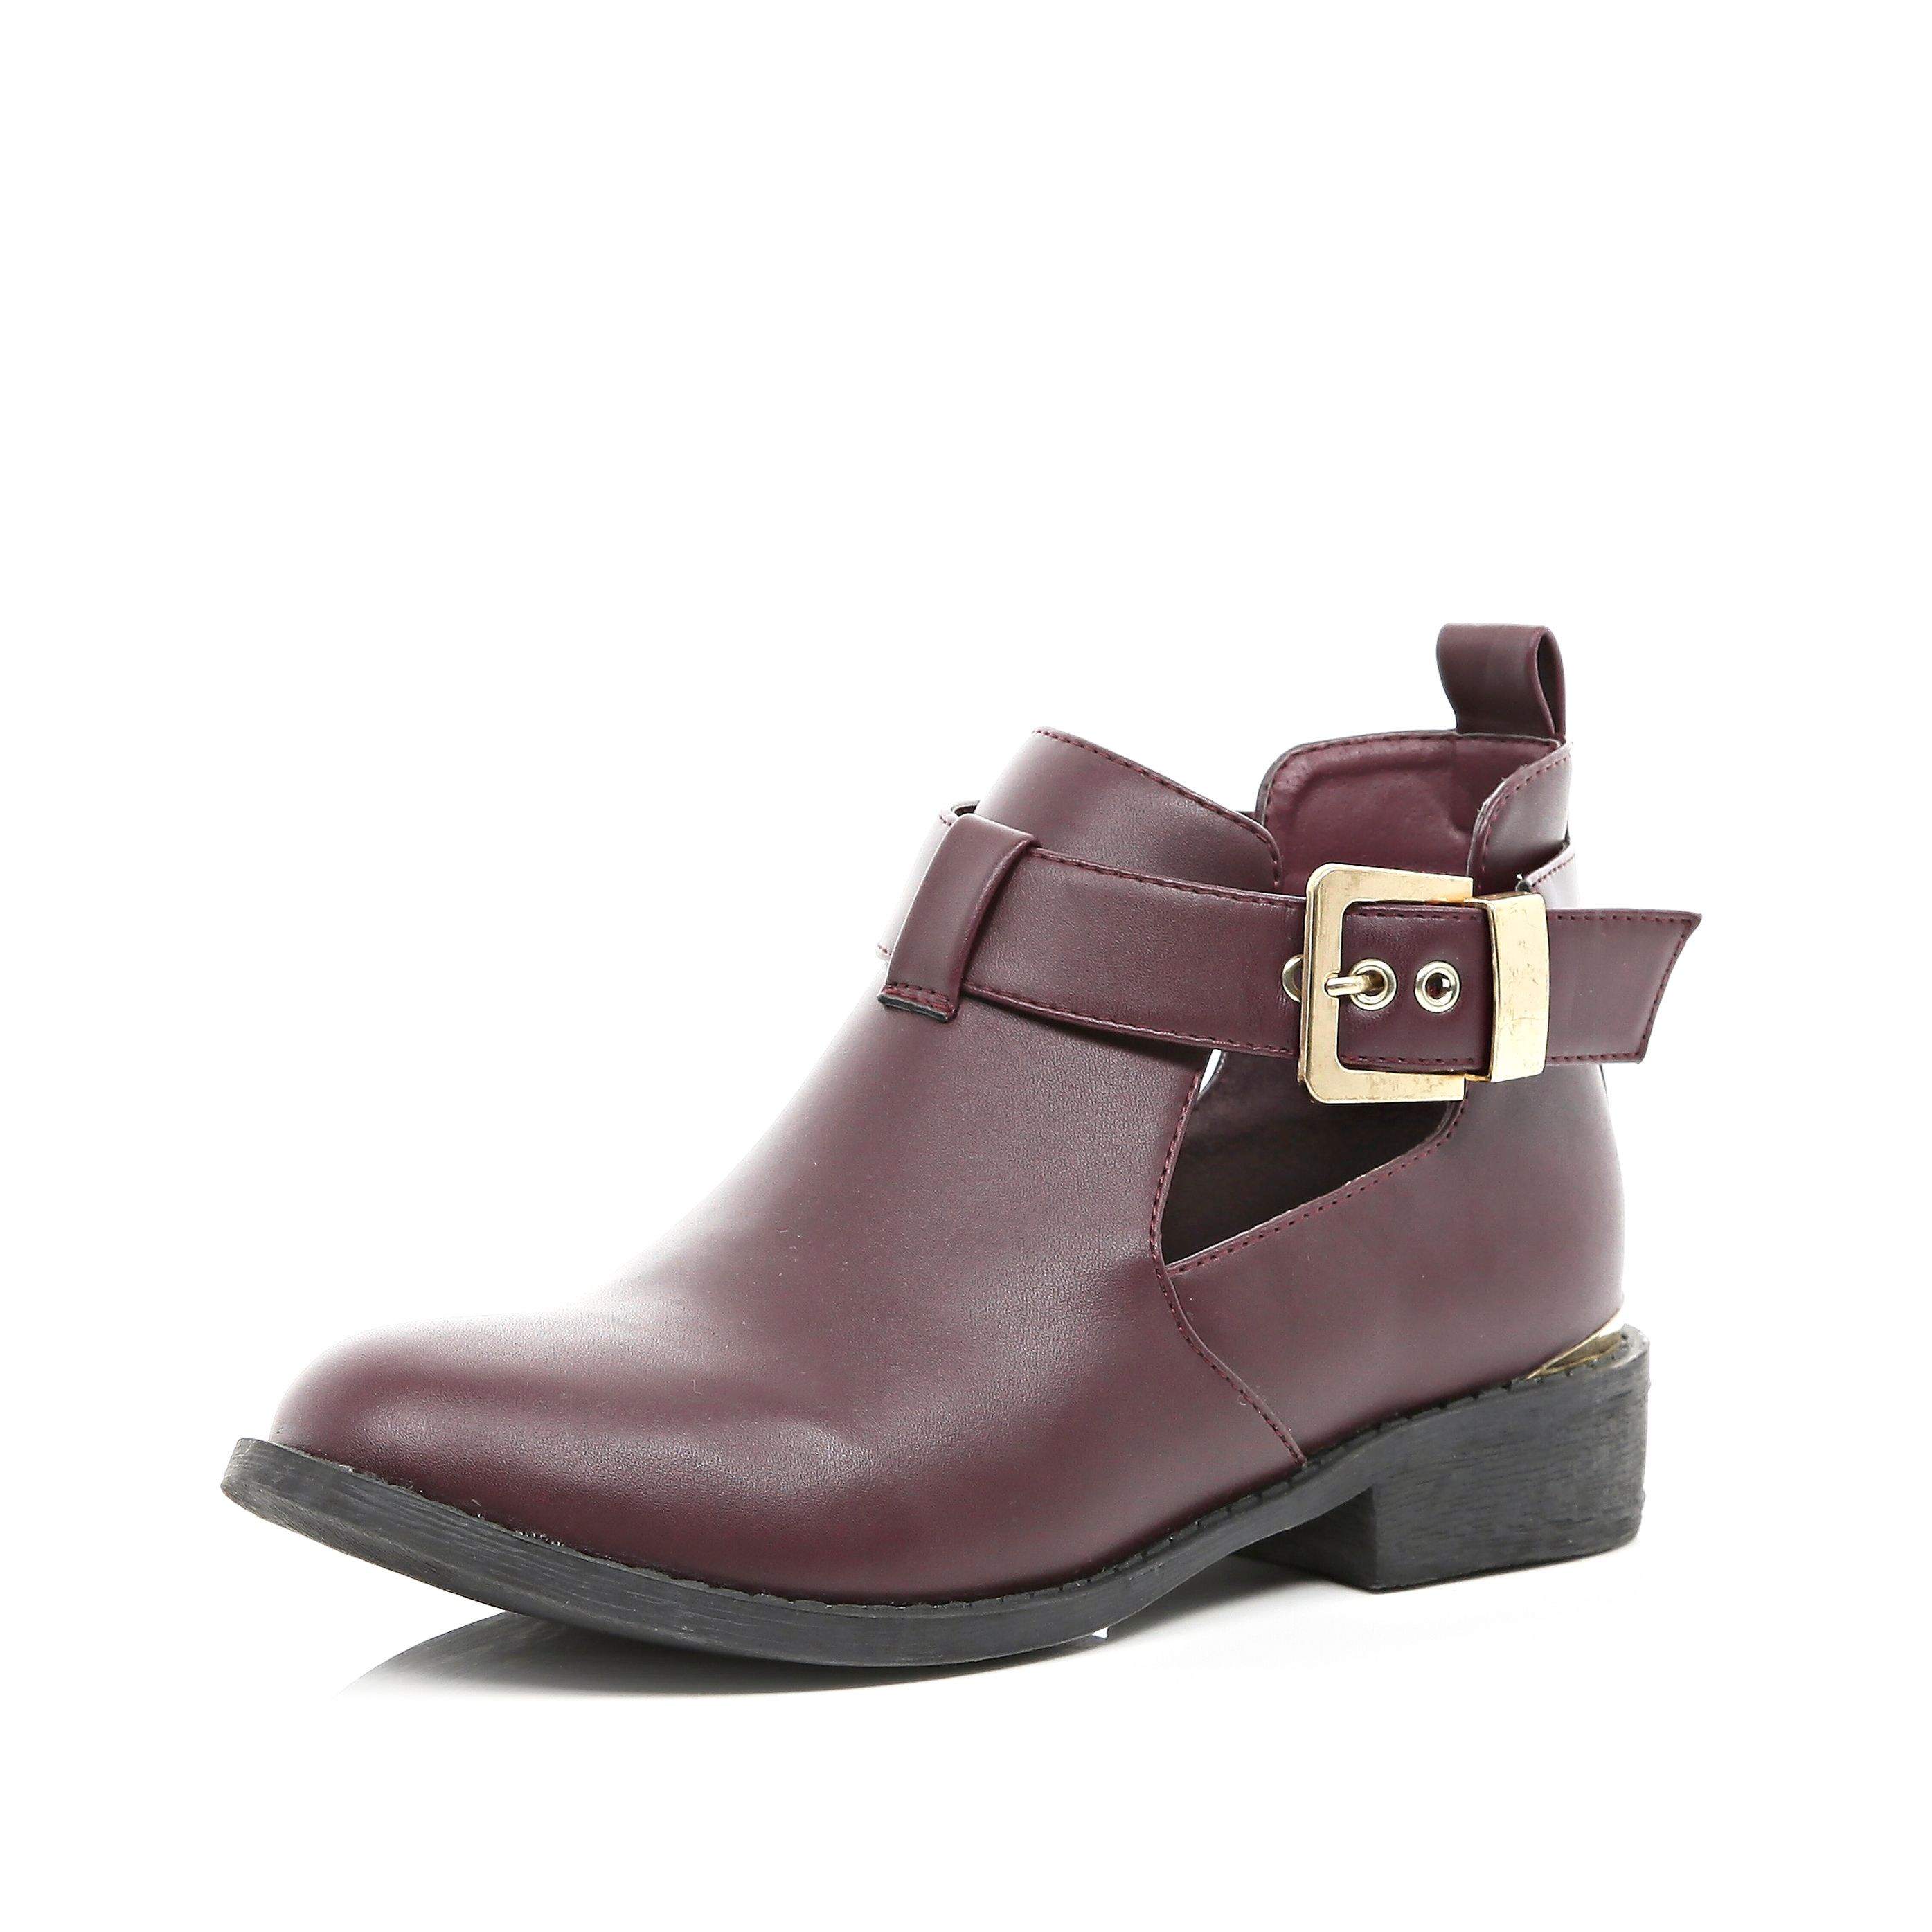 River Island Dark Red Cut-Out Ankle Boots €45